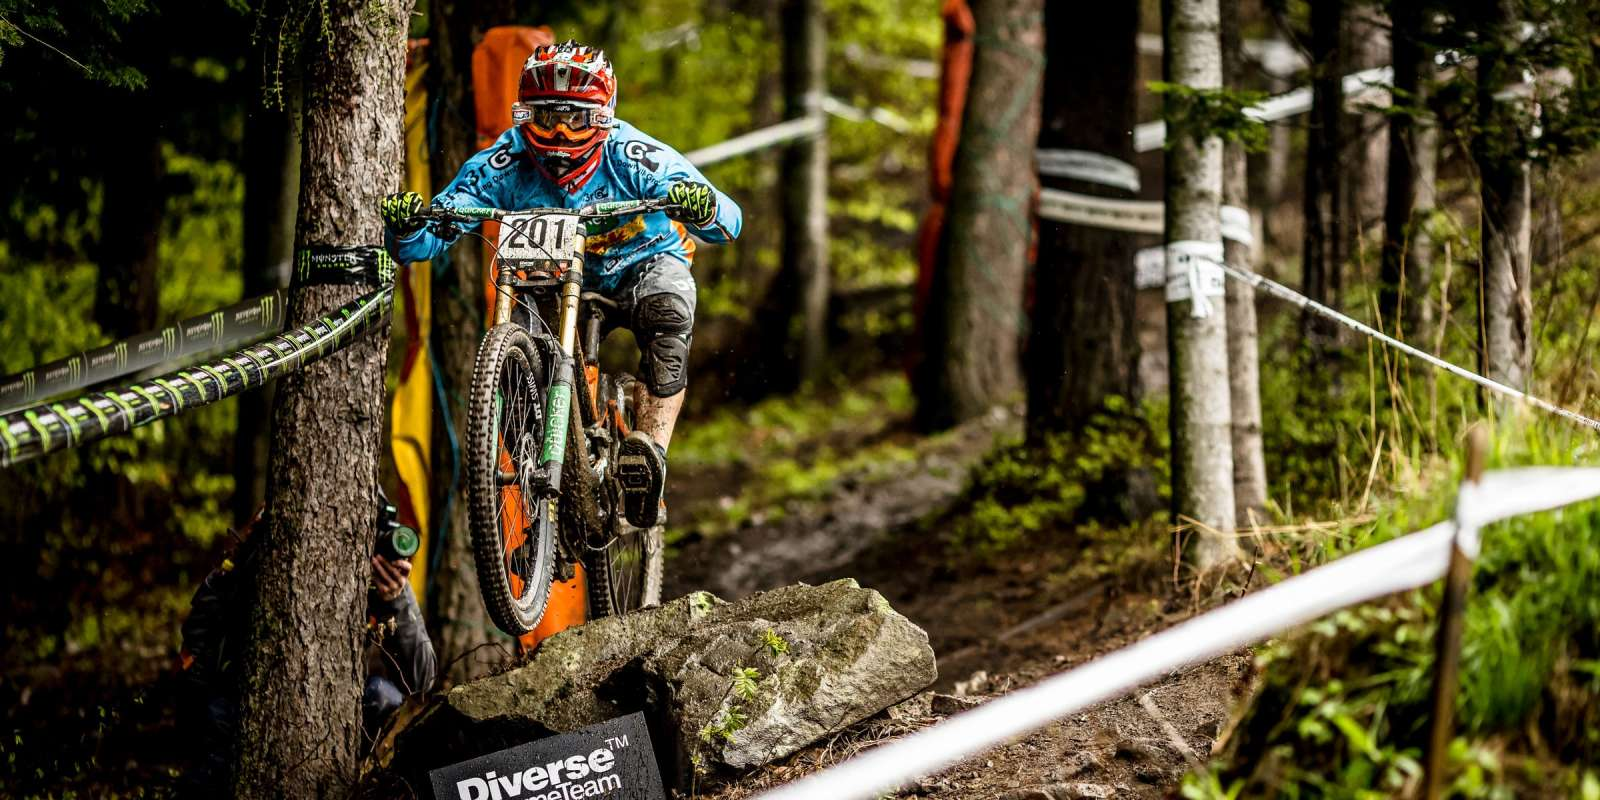 Downhill action at Diverse Downhill Contest 2016 Rd 1, Miedzybrodzie Zywieckie